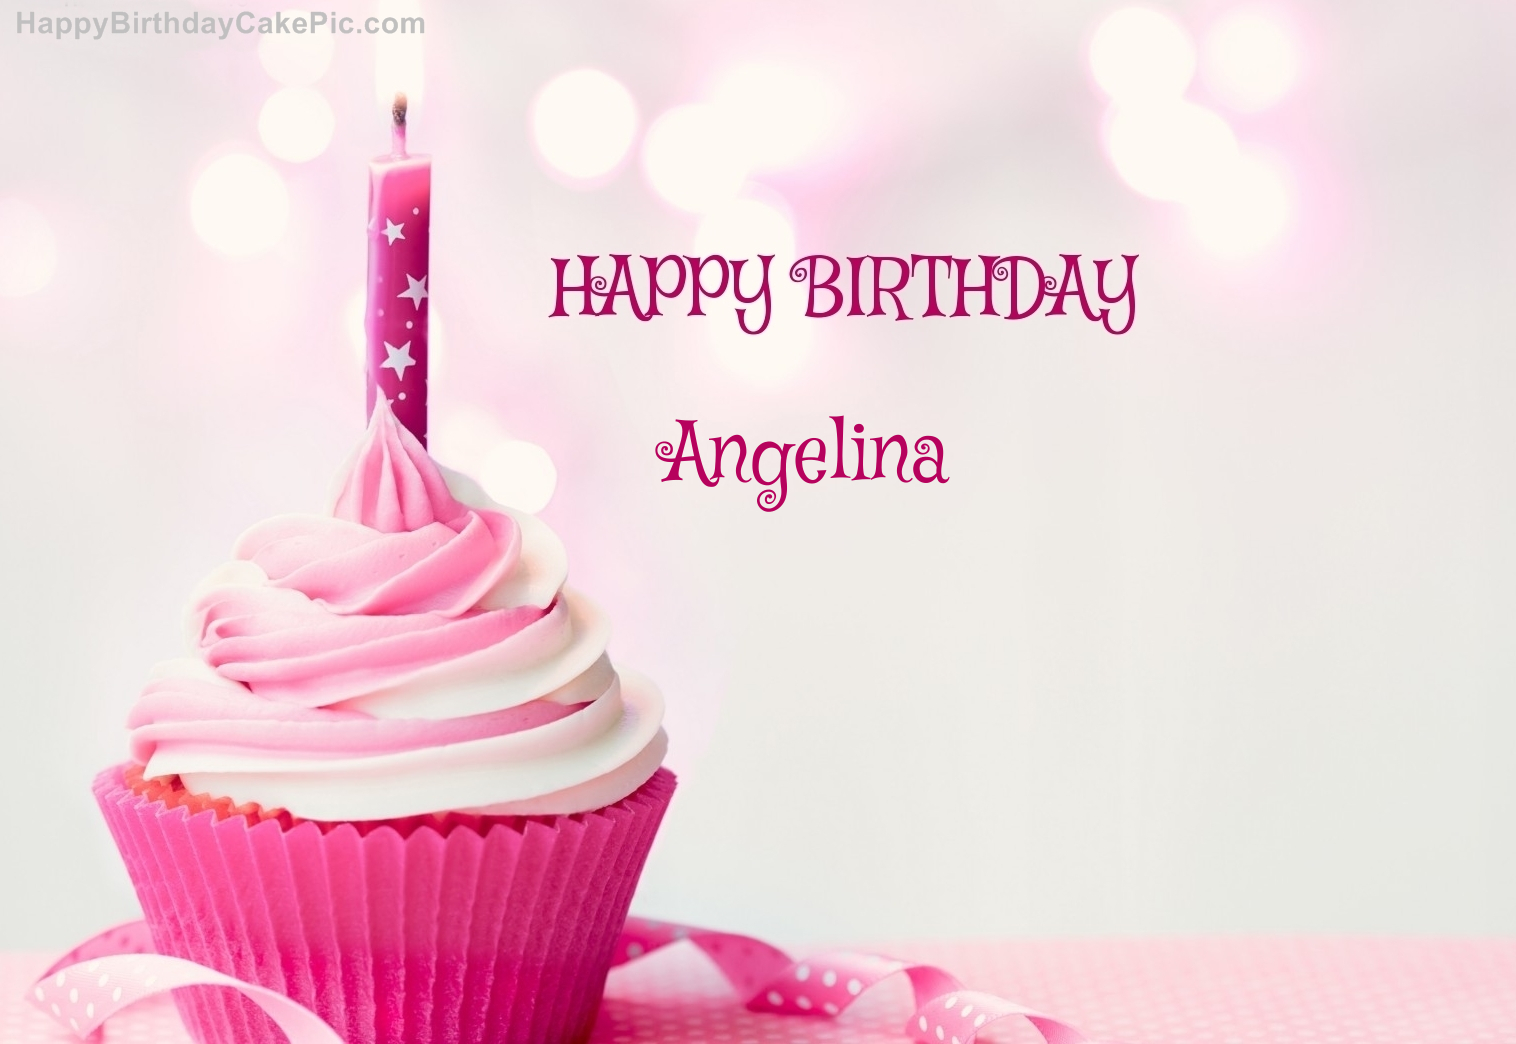 Happy Birthday Cupcake Candle Pink Cake For Angelina